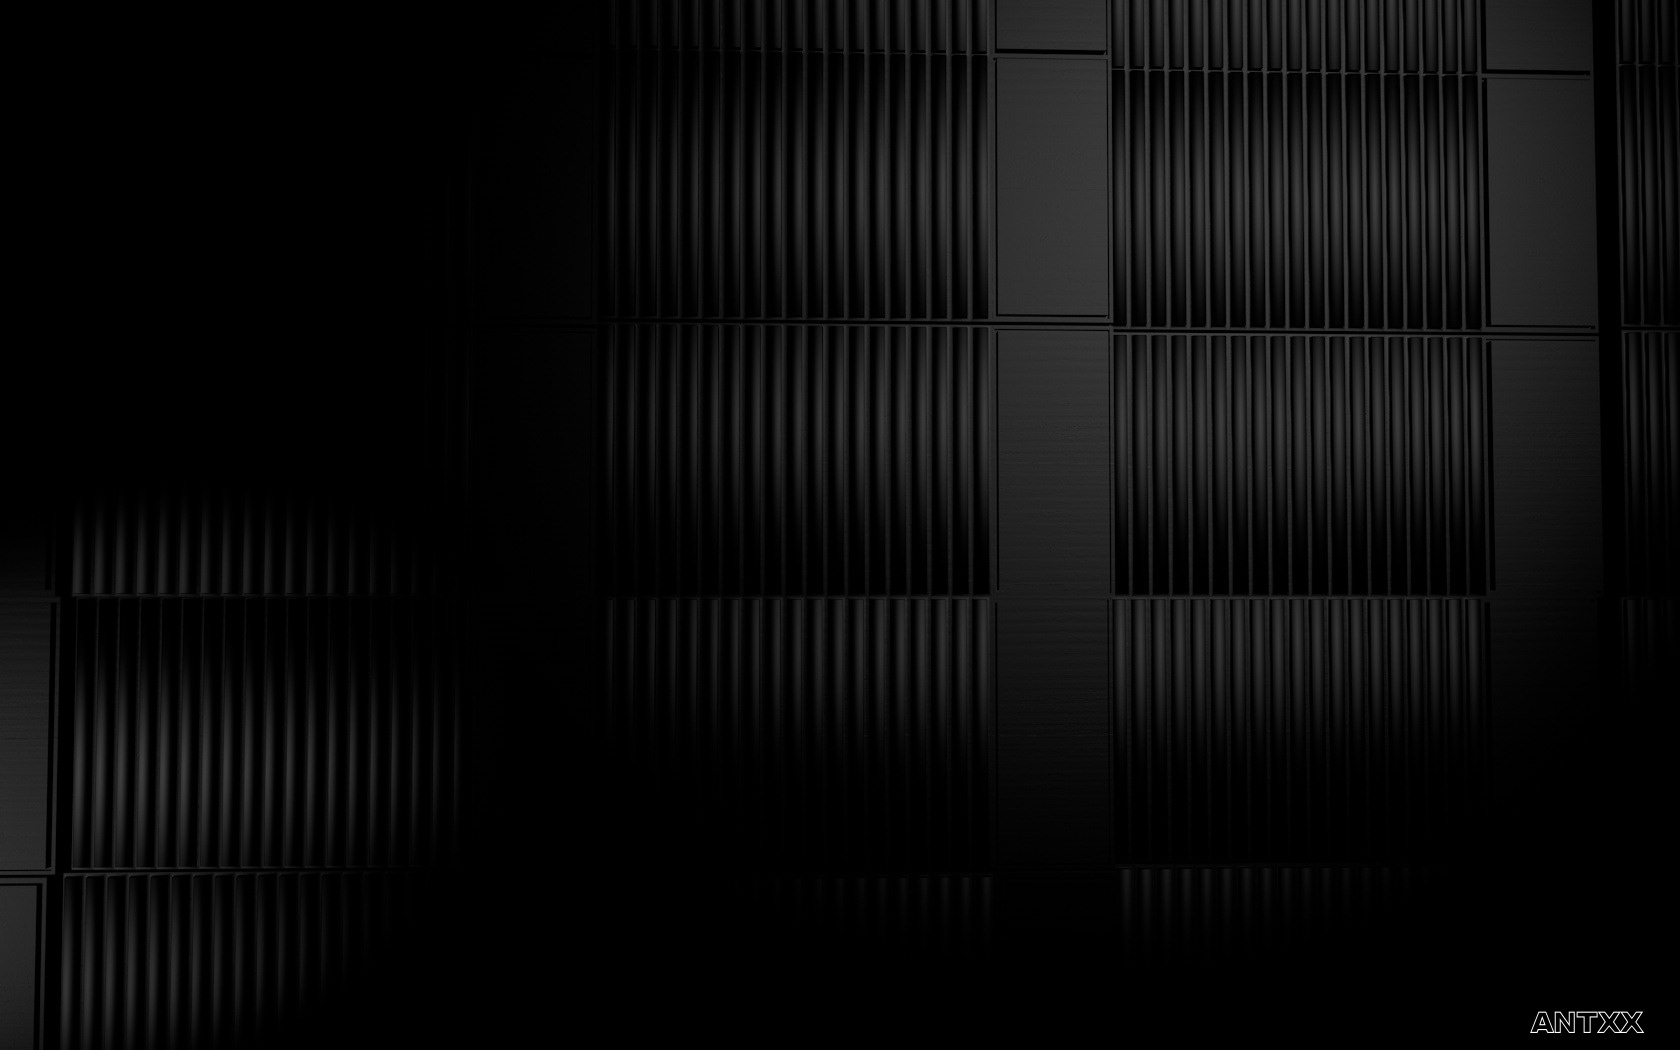 Made in Cinema 4D Just black cubes to have a nice calm background 1680x1050